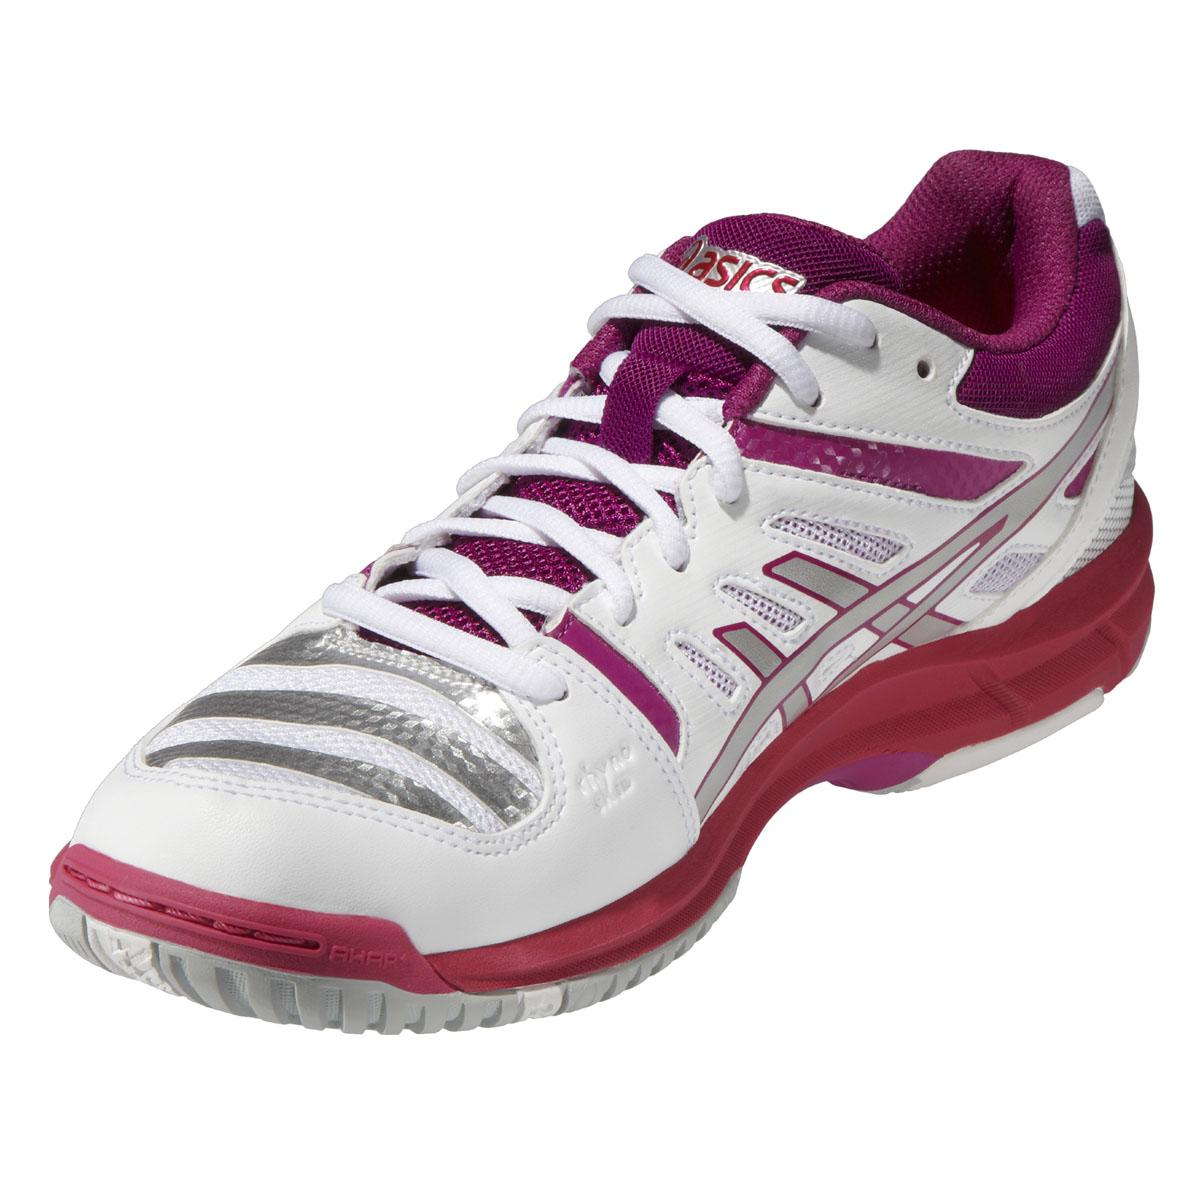 asics womens gel beyond 4 indoor court shoes white lightning fuschia. Black Bedroom Furniture Sets. Home Design Ideas